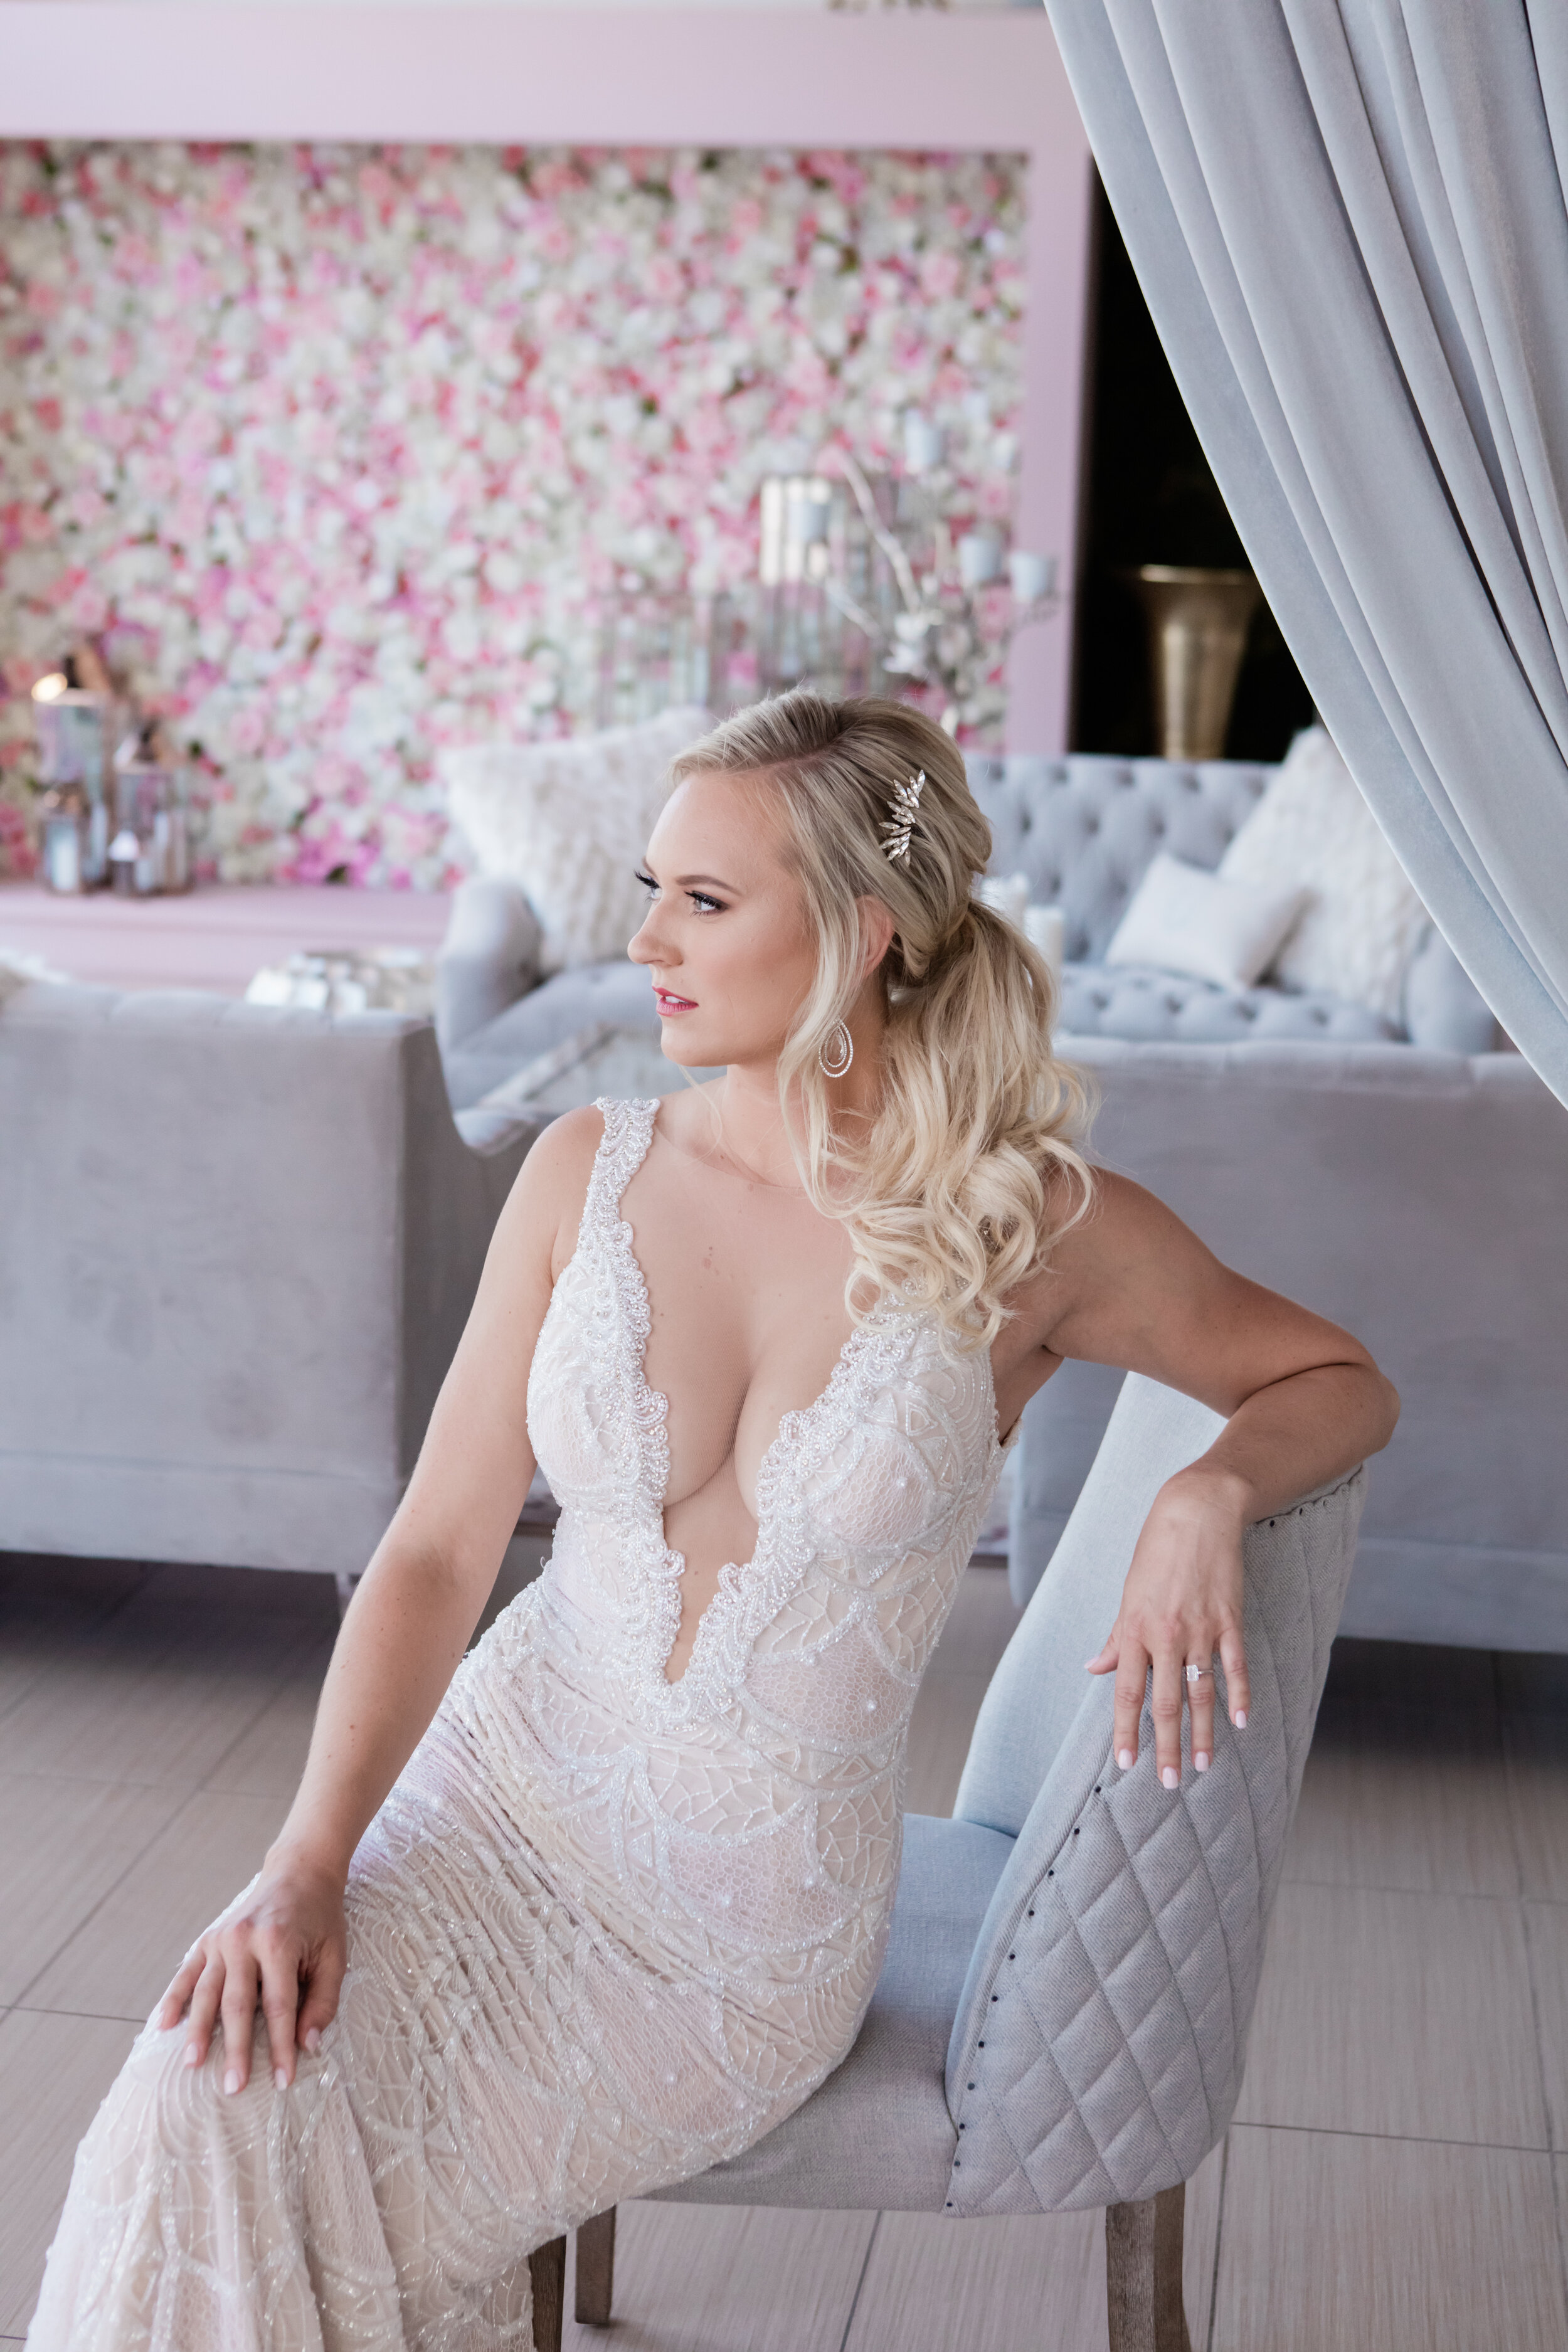 Reception Dress and new styling. Bridal fashion session in suite. Las Vegas Wedding Planner www.andreaeppolitoevents.com. Photo by Adam Frazier.